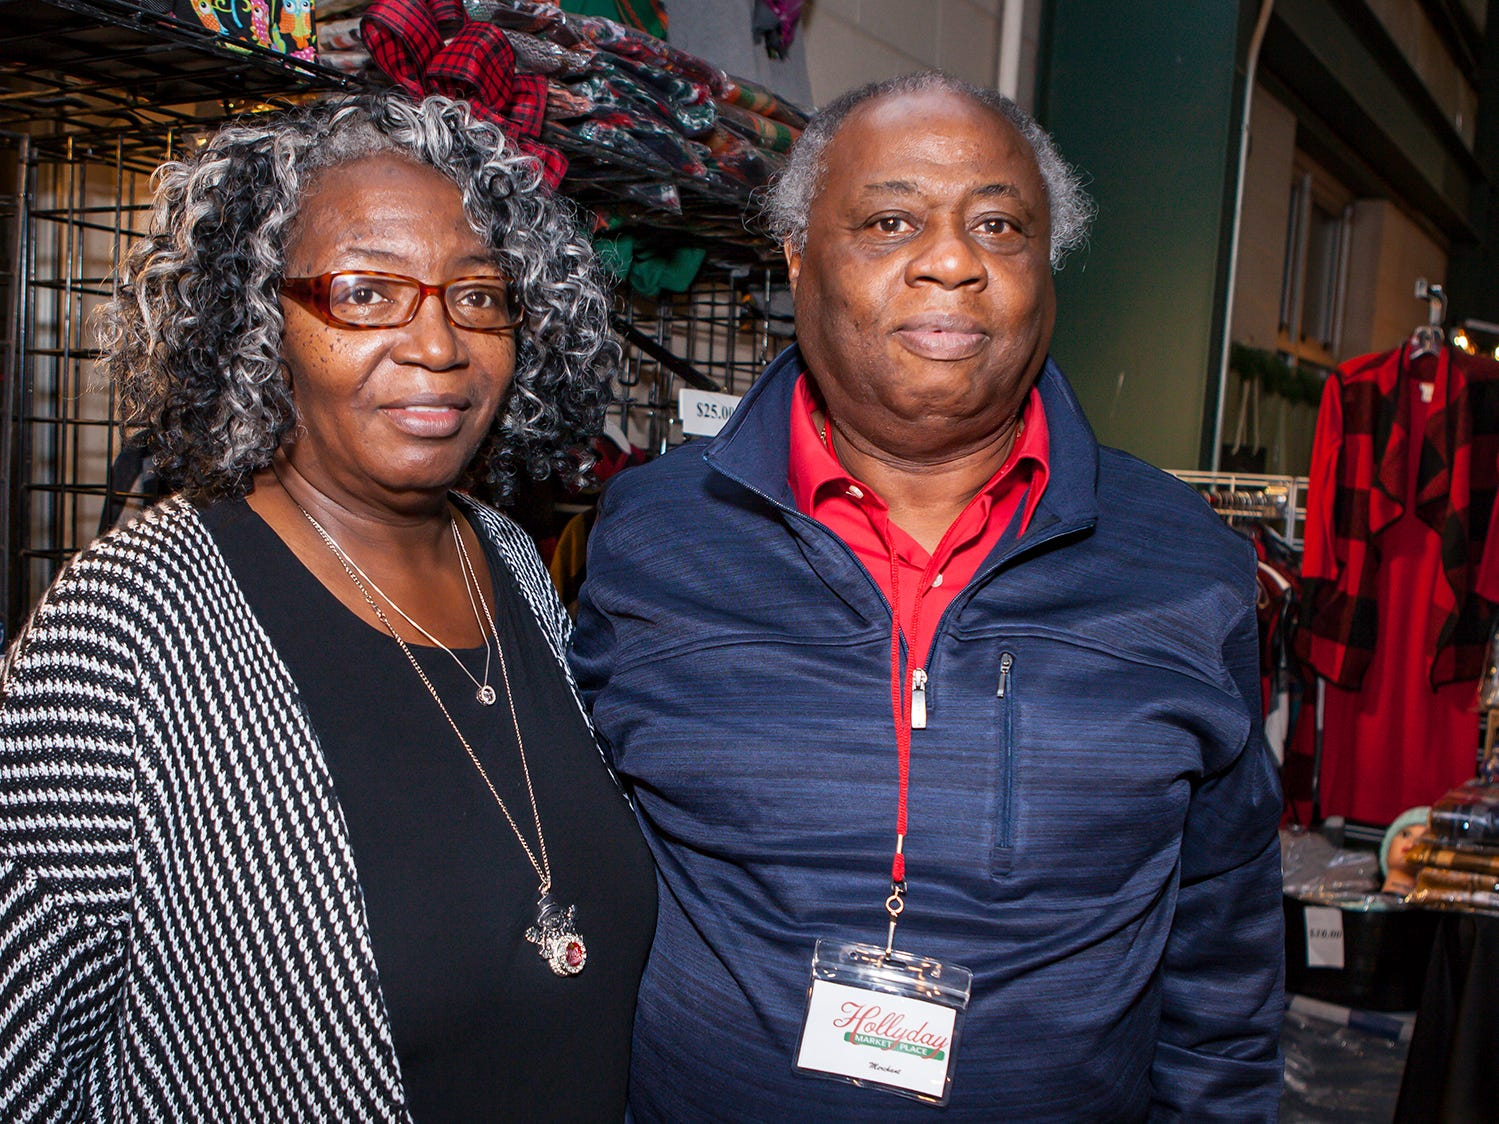 Stephanie Jordan and Willie Malone at Mistletoe & Martinis, the preview party for Junior League of Murfreesboro's 2018 Hollyday Marketplace.